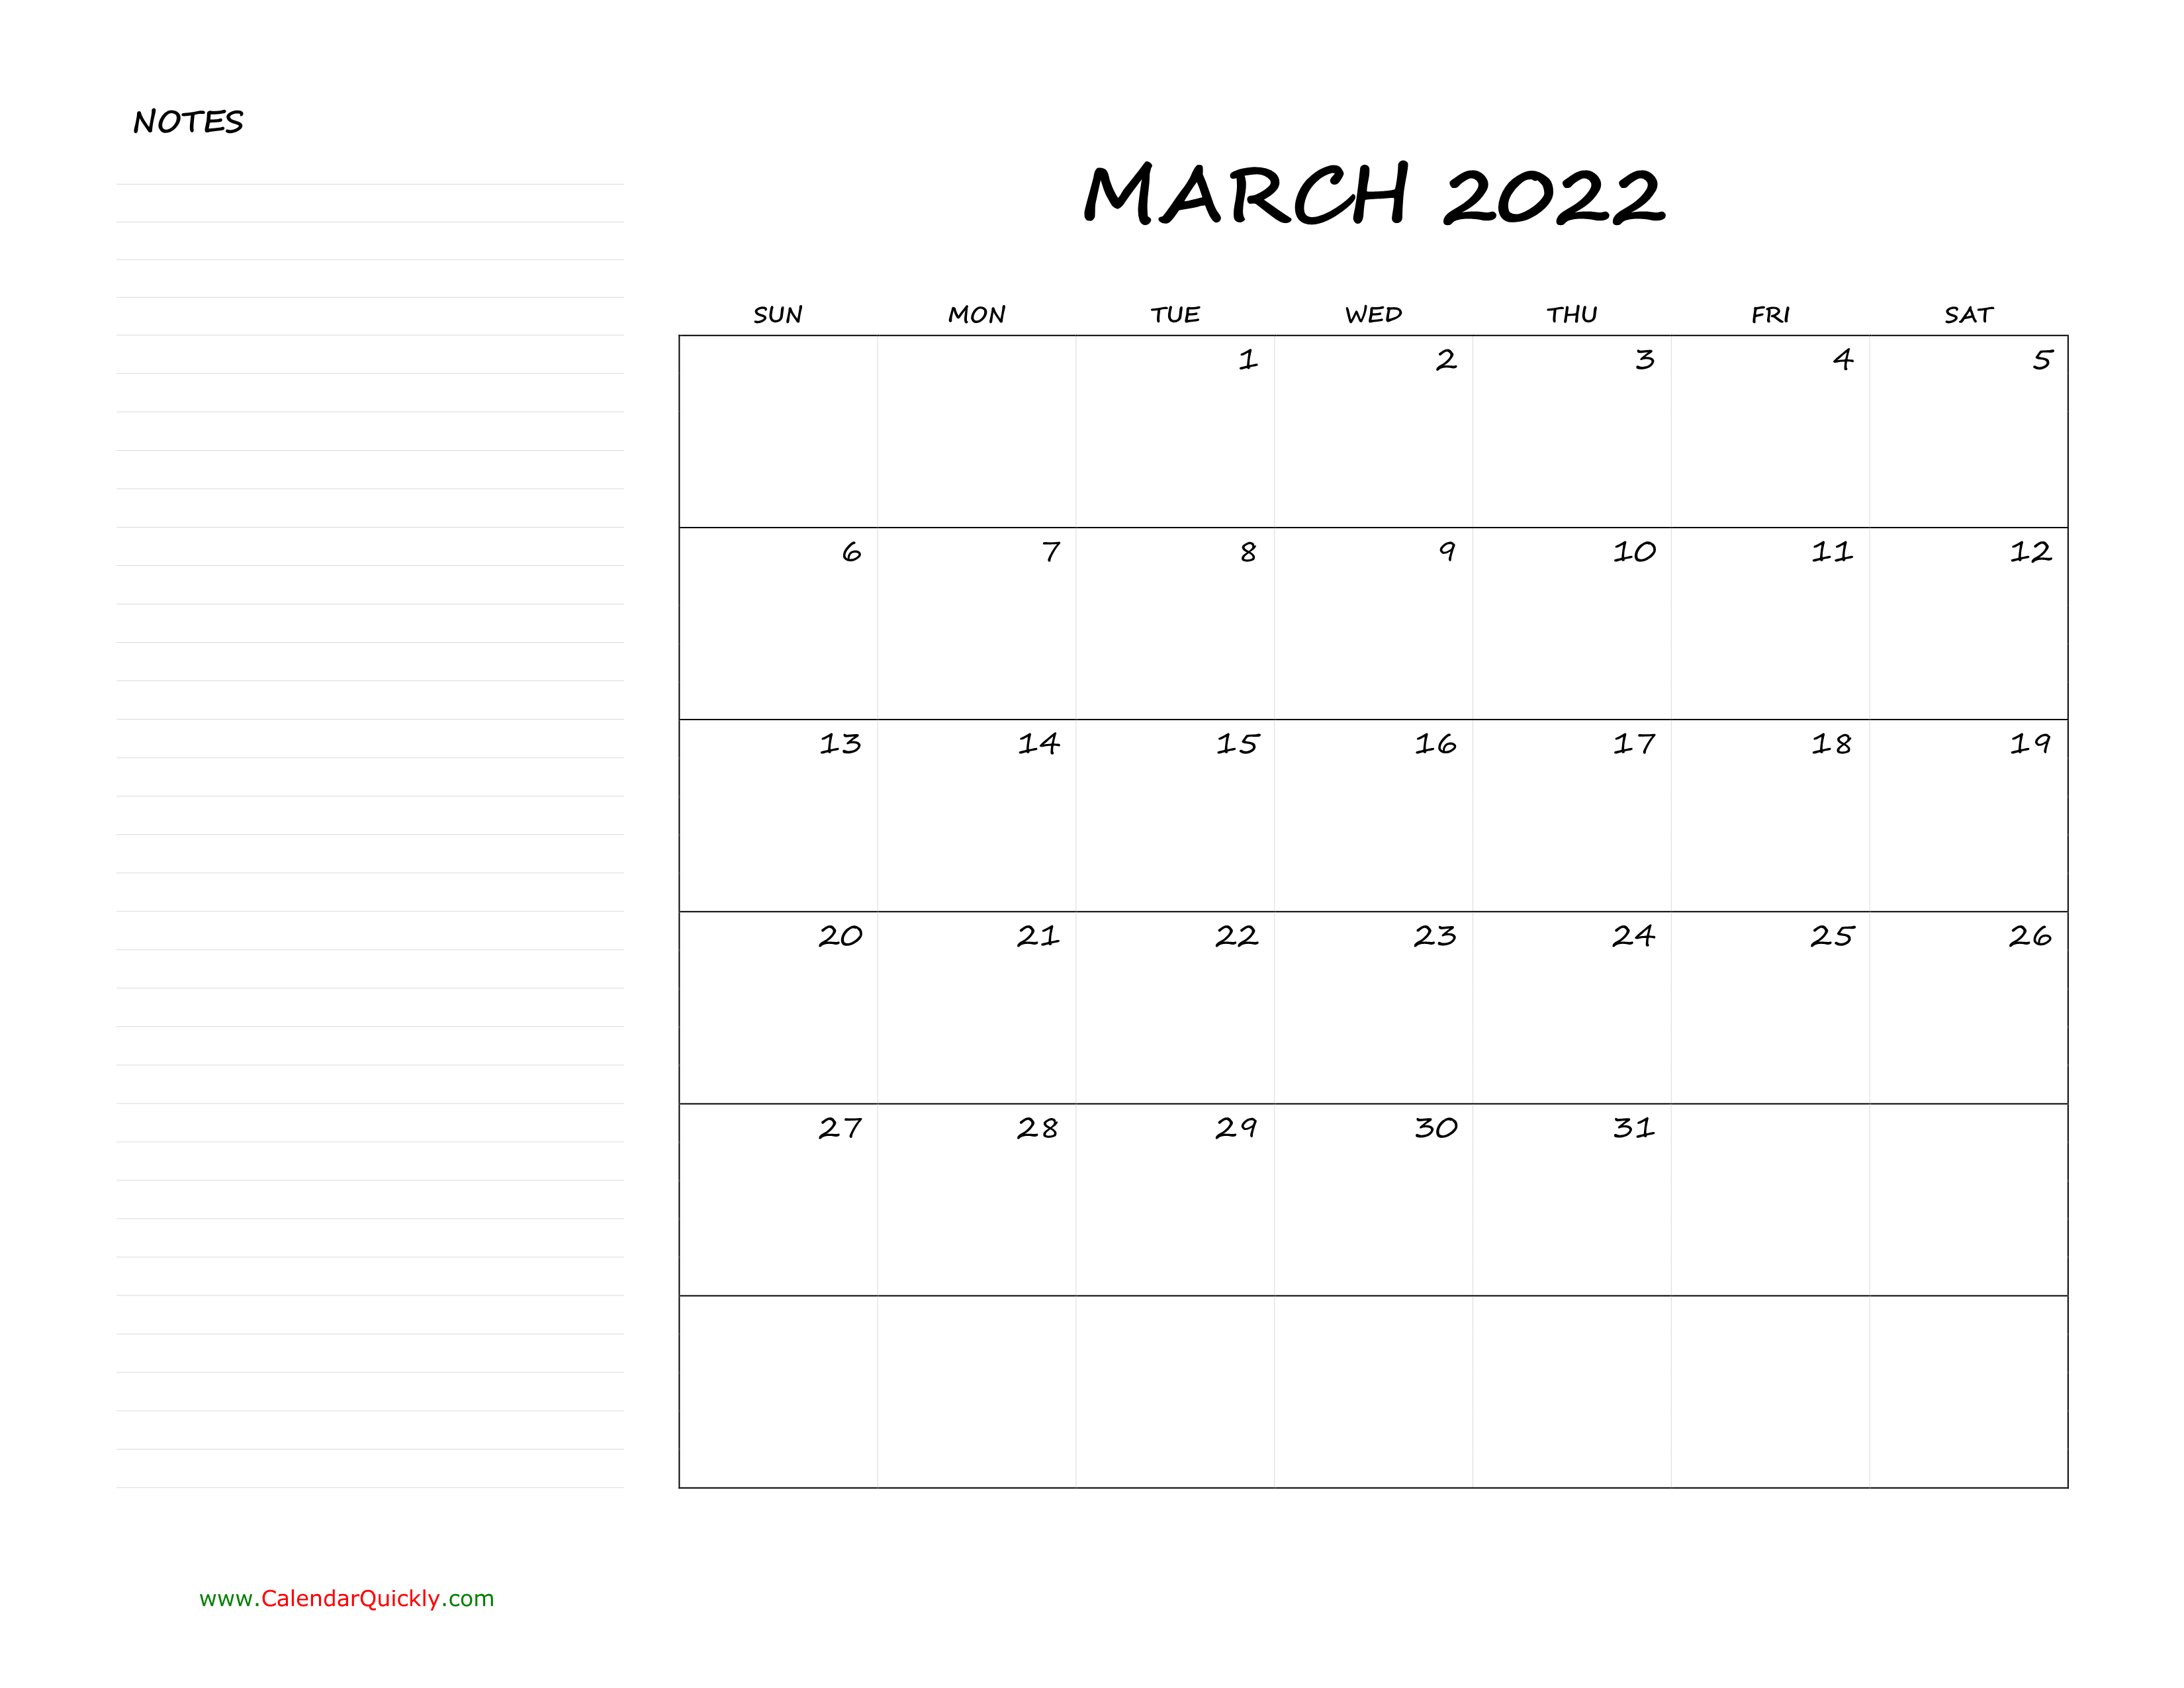 March Blank Calendar 2022 With Notes | Calendar Quickly Pertaining To Caladar For The Mont Of March 2022